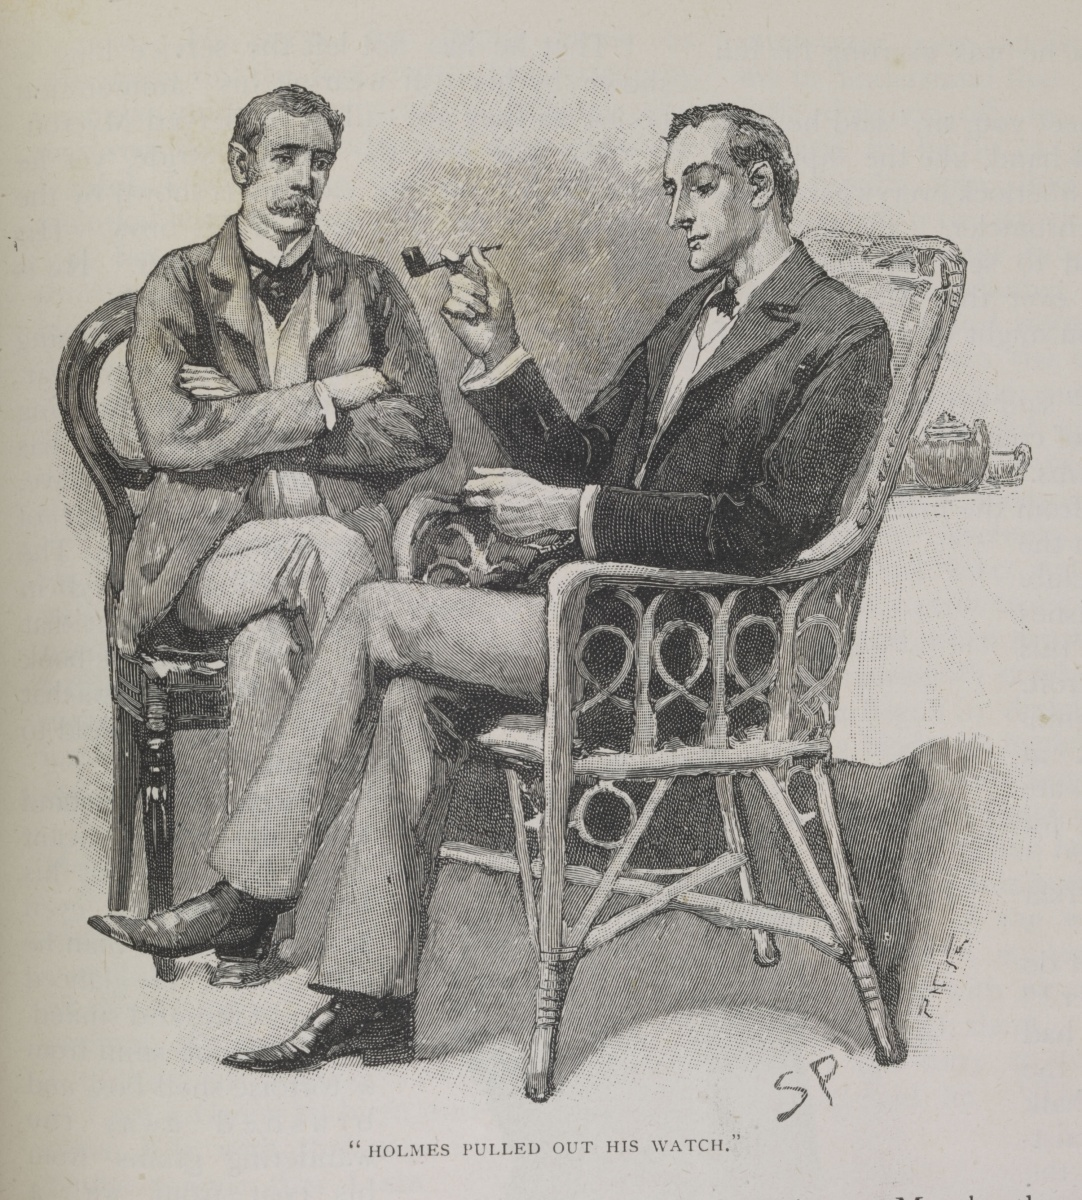 Source: Illustration by Sidney Paget.